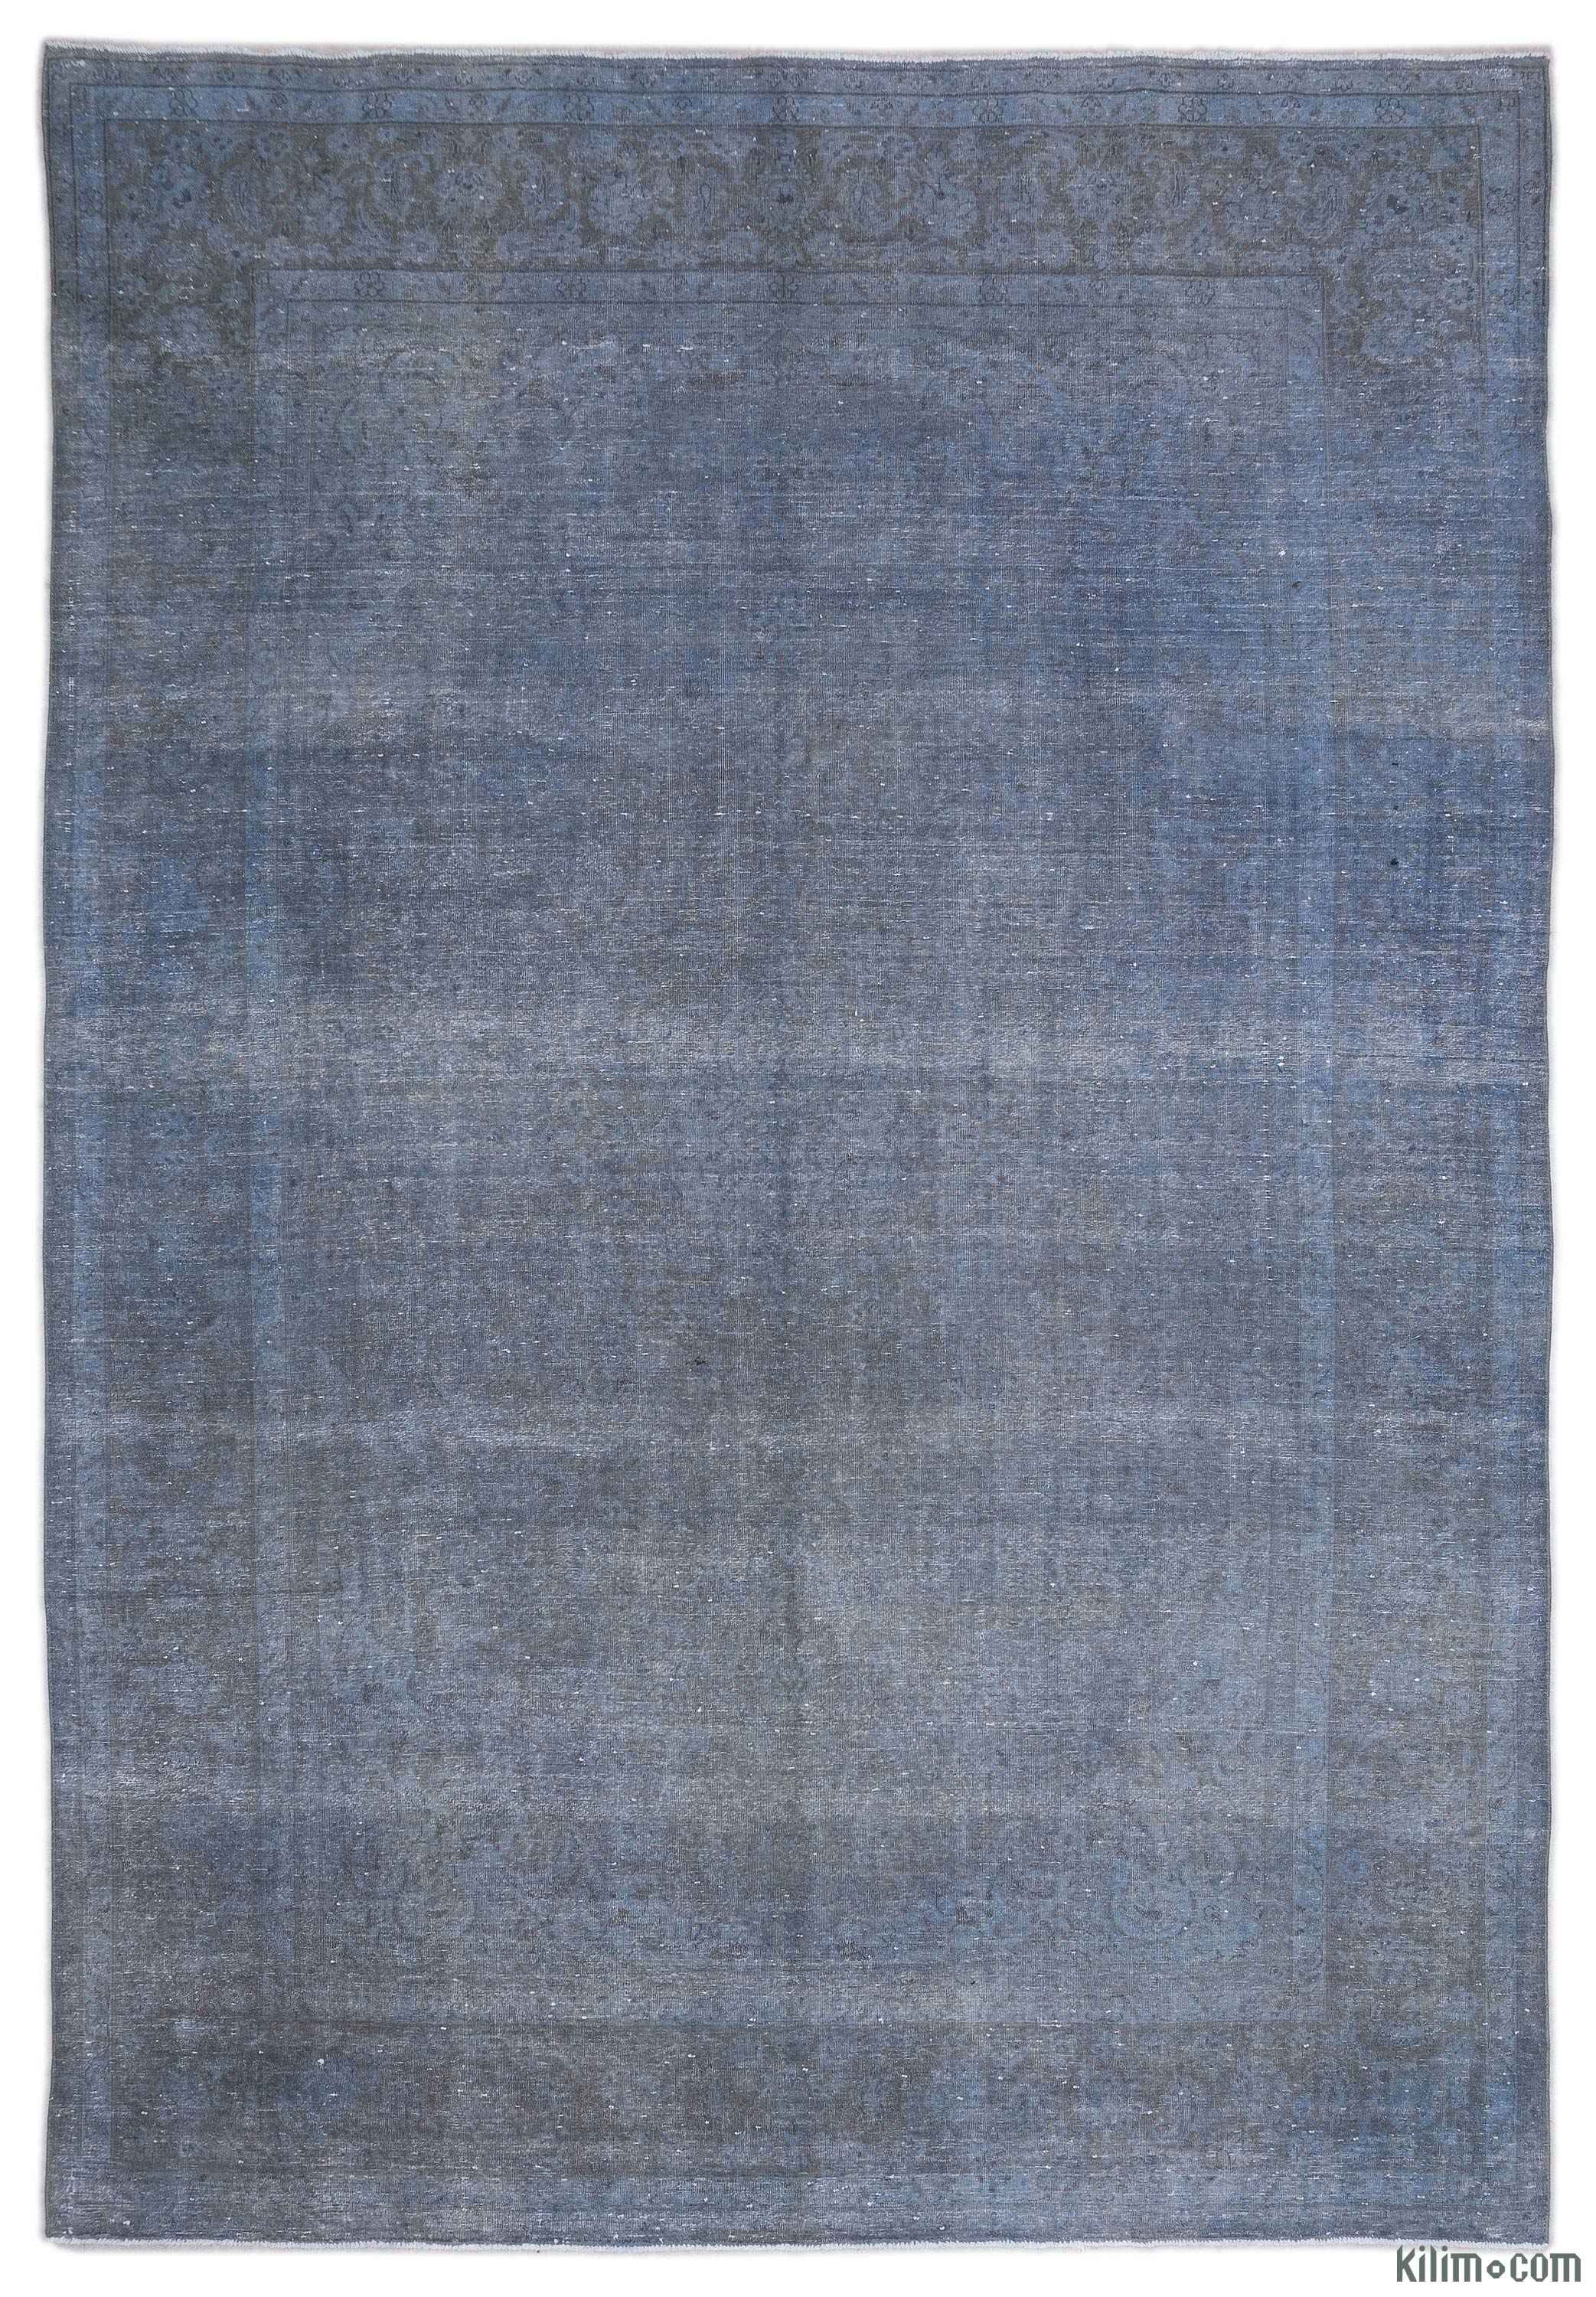 K0018403 Blue Over-dyed Persian Vintage Rug | Kilim Rugs, Overdyed Vintage Rugs, Hand-made Turkish Rugs, Patchwork Carpets by Kilim.com